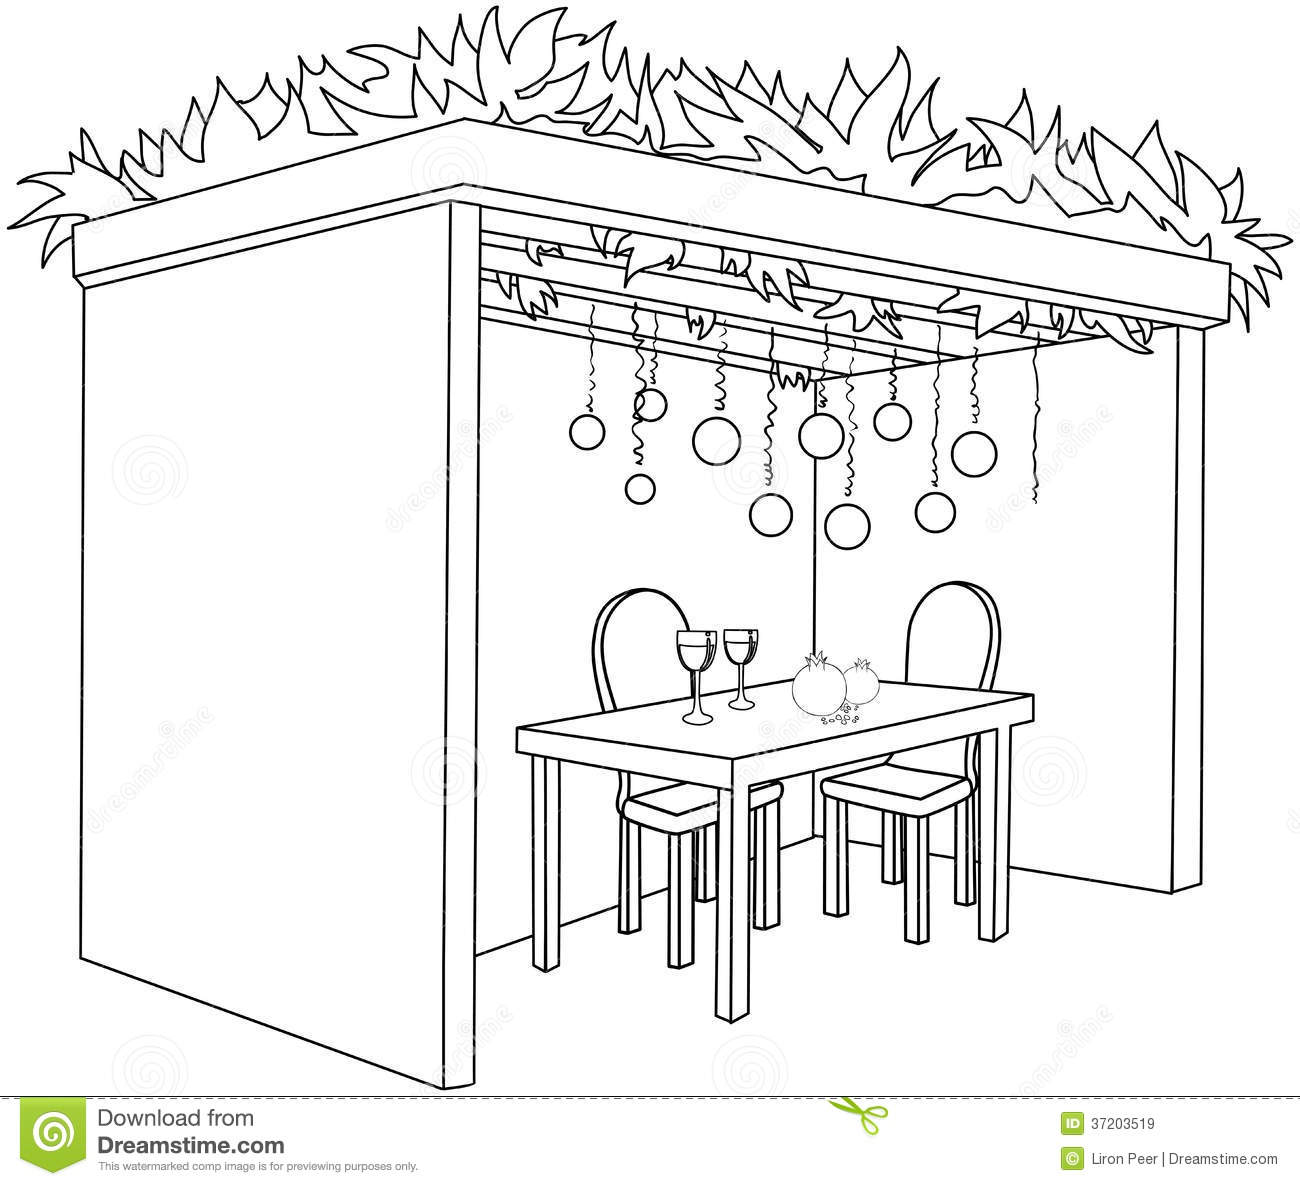 Sukkah For Sukkot With Table Coloring Page Stock Vector ...